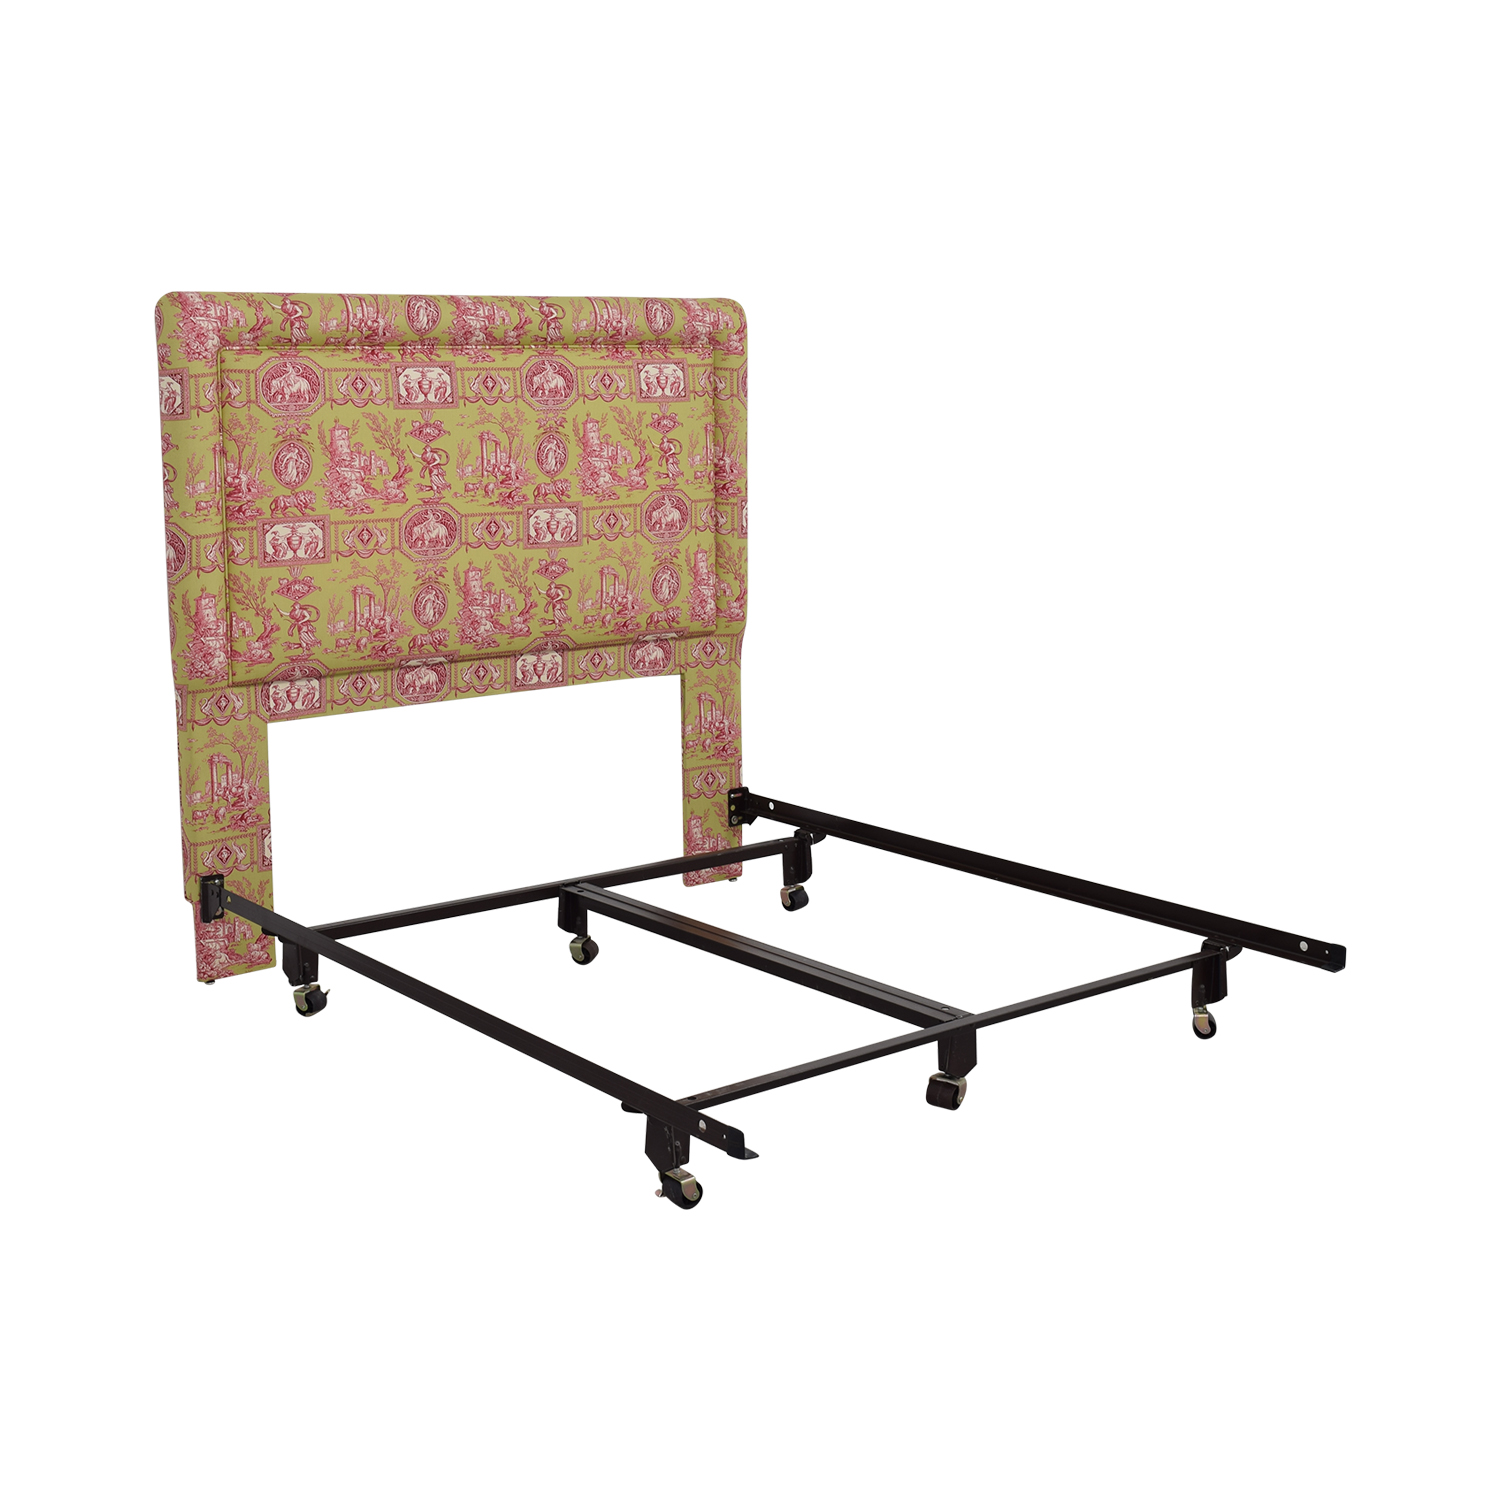 buy Green and Pink Upholstered Queen Headboard Beds